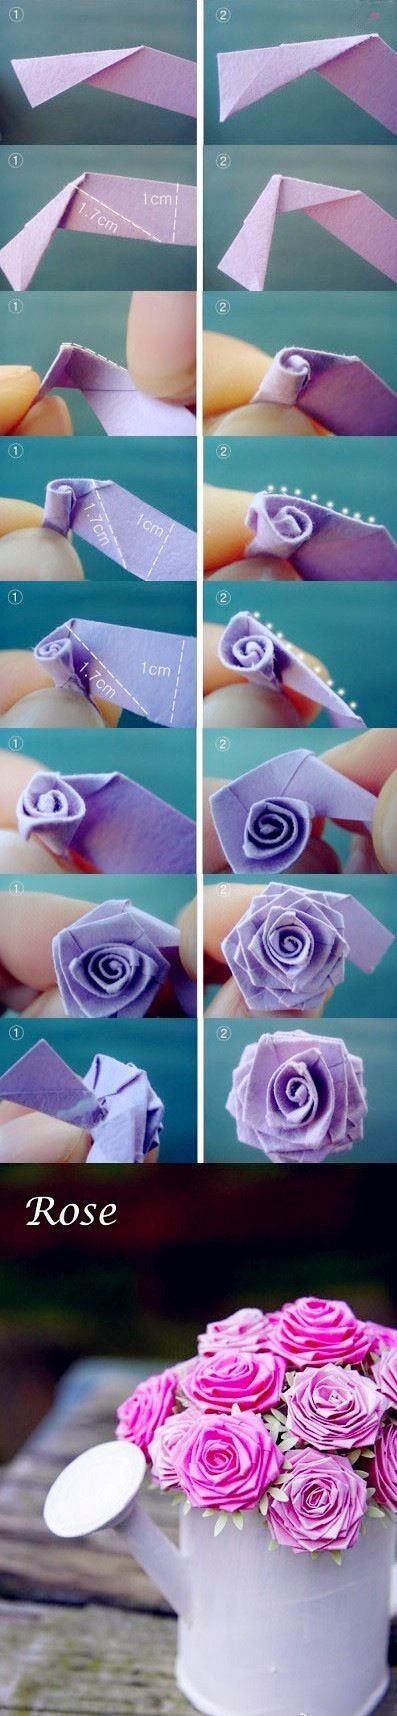 DIY rose from paper